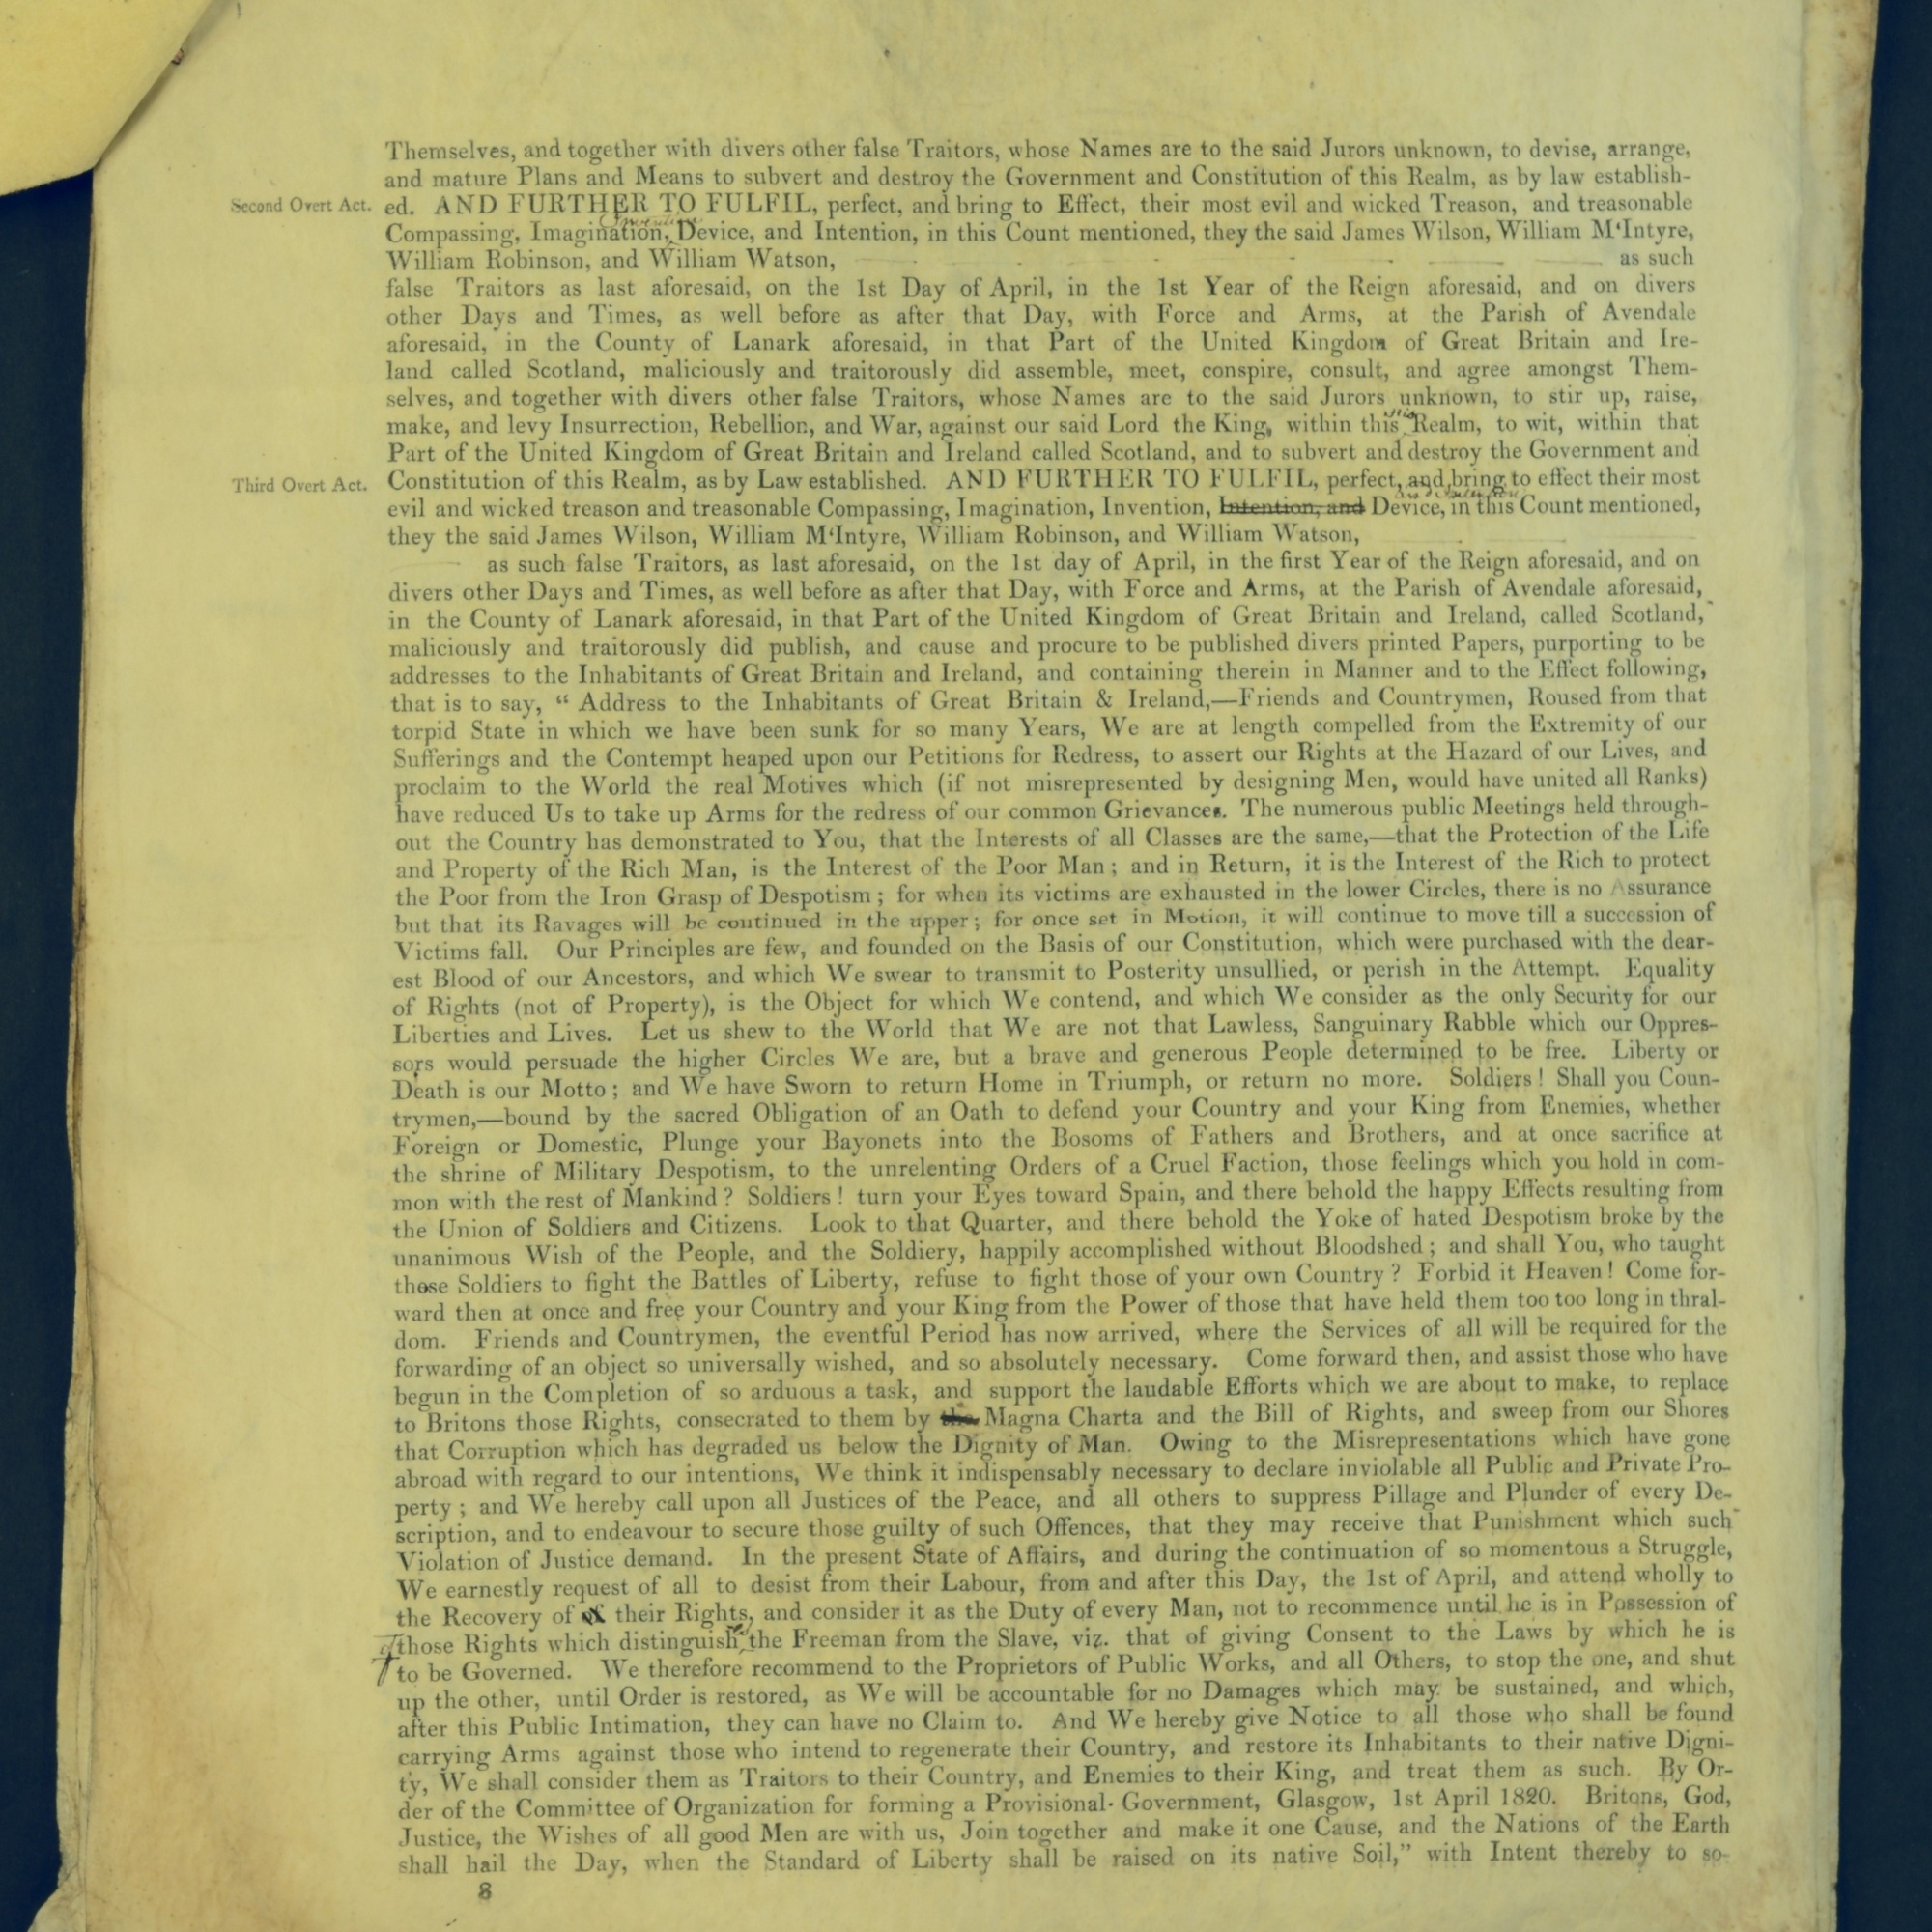 Treason Trials for the County of Lanark, the Strathaven Case. True bills found against four men, James Wilson, William McIntyre, William Robinson and William Watson. National Records of Scotland, Crown copyright, JC21/3/4 p8